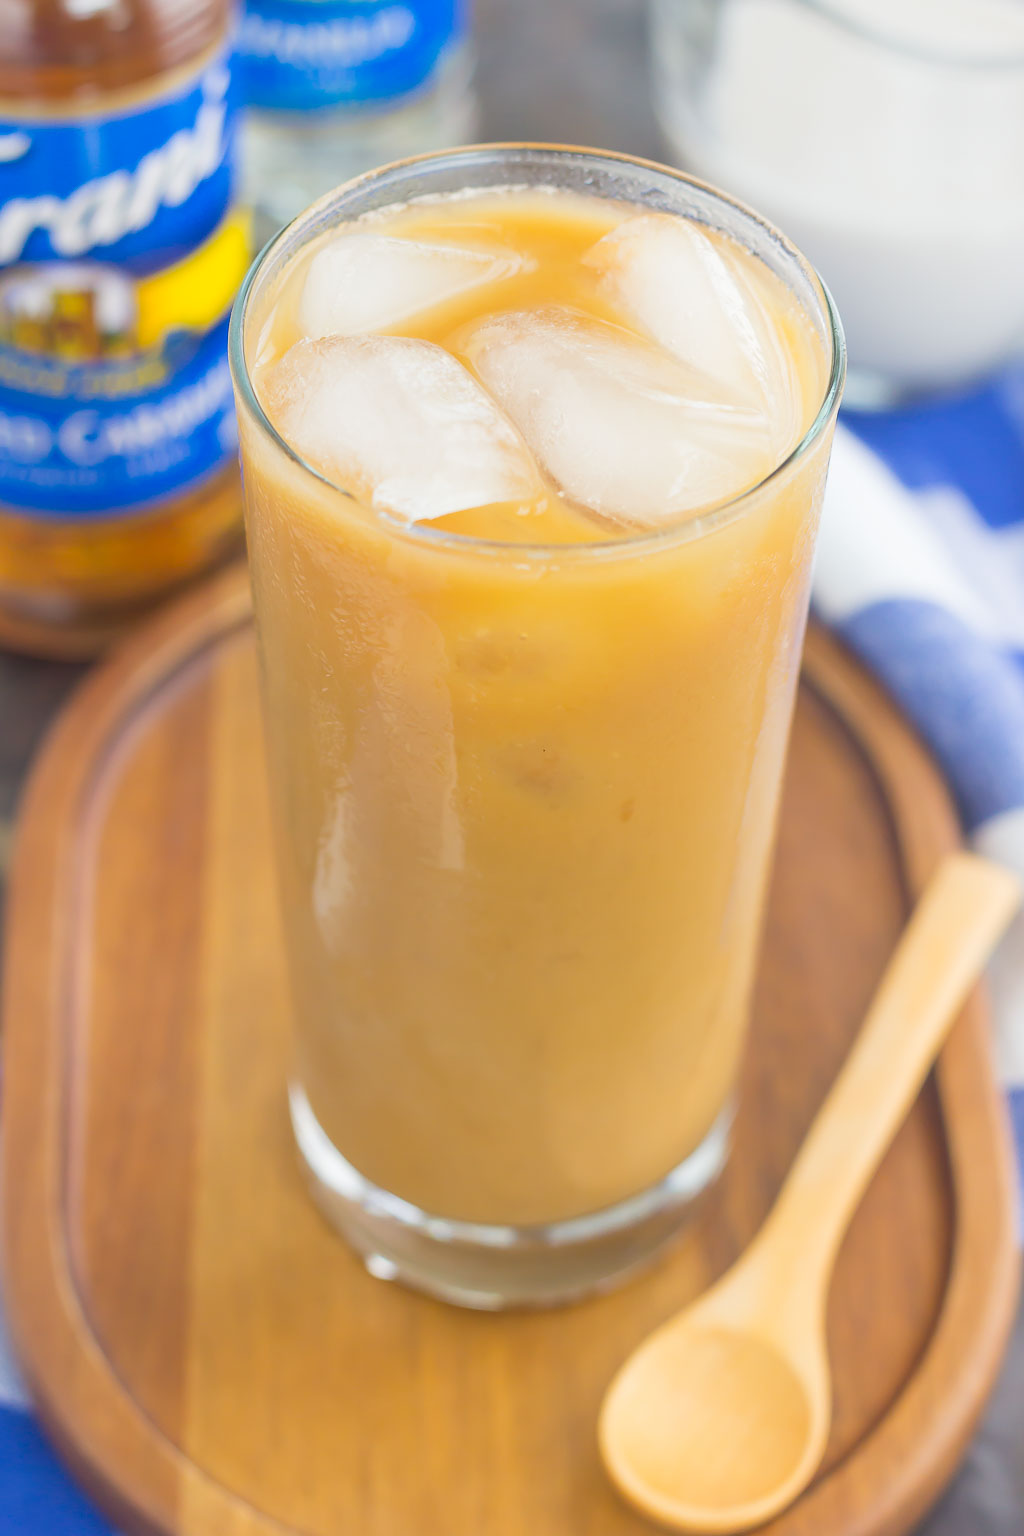 This Salted Caramel Almond Iced Coffee is an easy, three ingredient drink to beat the summer heat. Bold coffee is combined with almond milk and a hint of salted caramel syrup to create a smooth and decadent flavor. Ready in less than 5 minutes and perfect for just about any day, you'll be sipping on this sweet treat all year long!